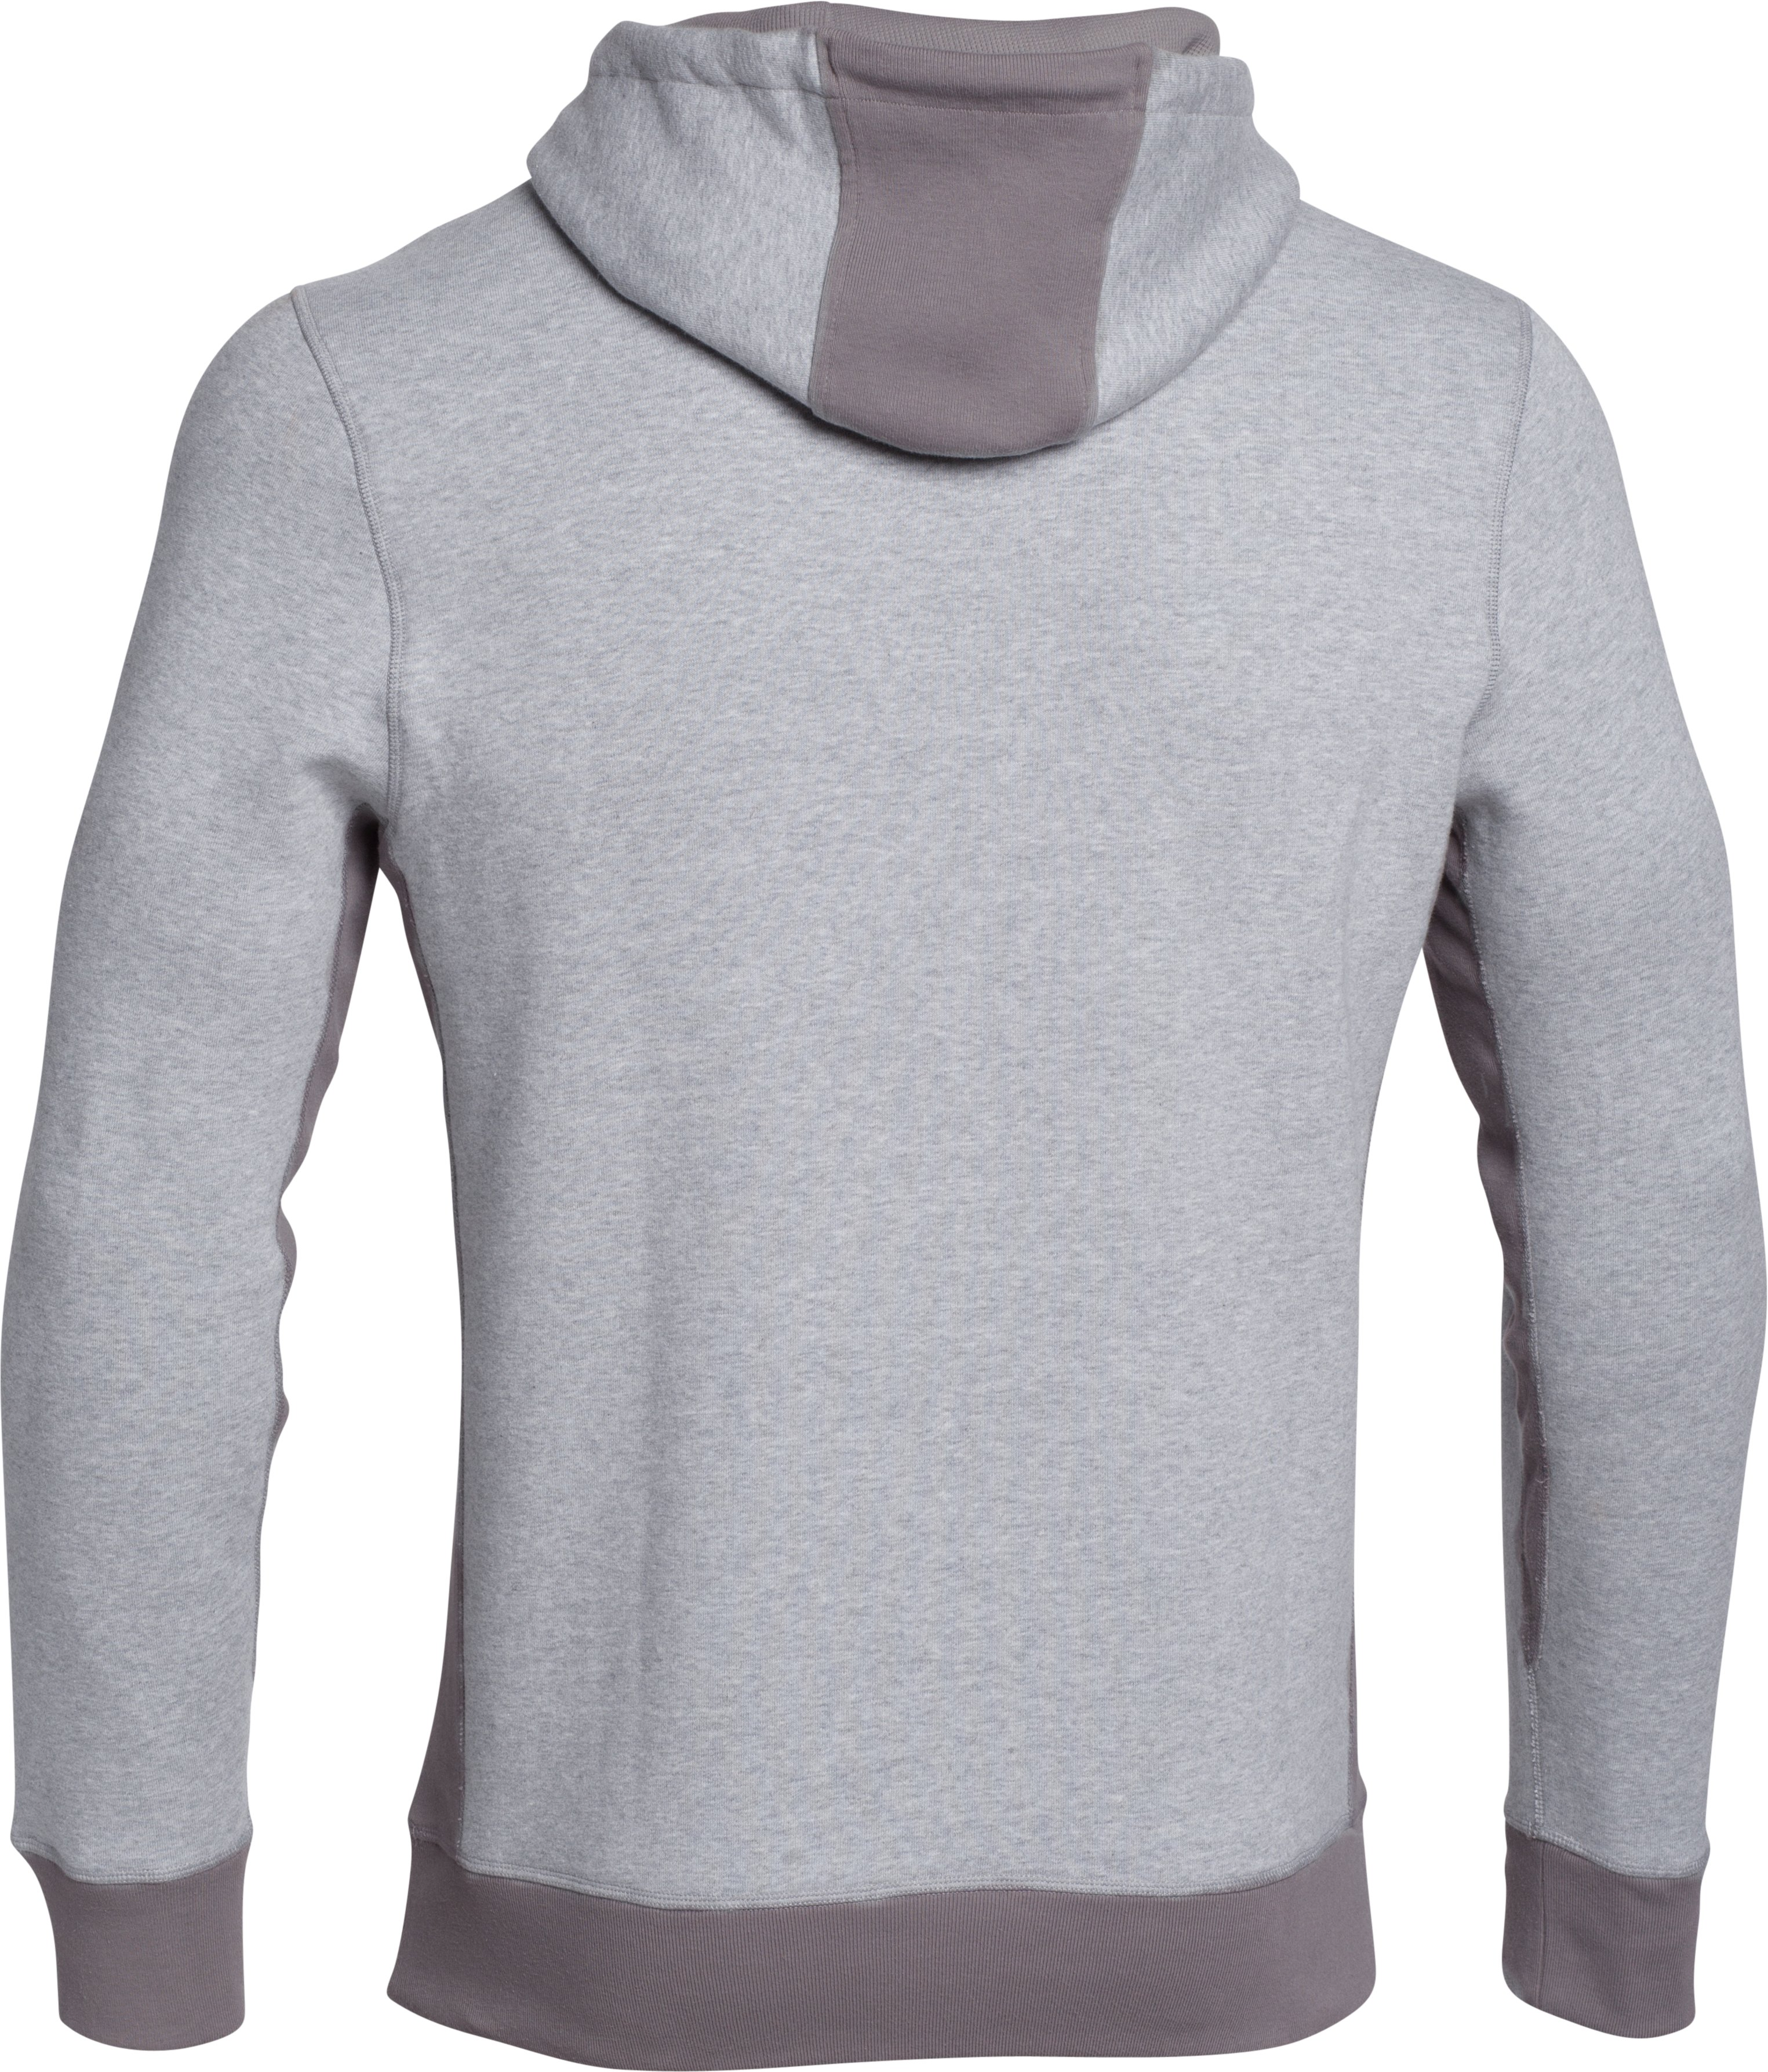 Men's Charged Cotton® Heavyweight Graphic Hoodie, True Gray Heather, undefined